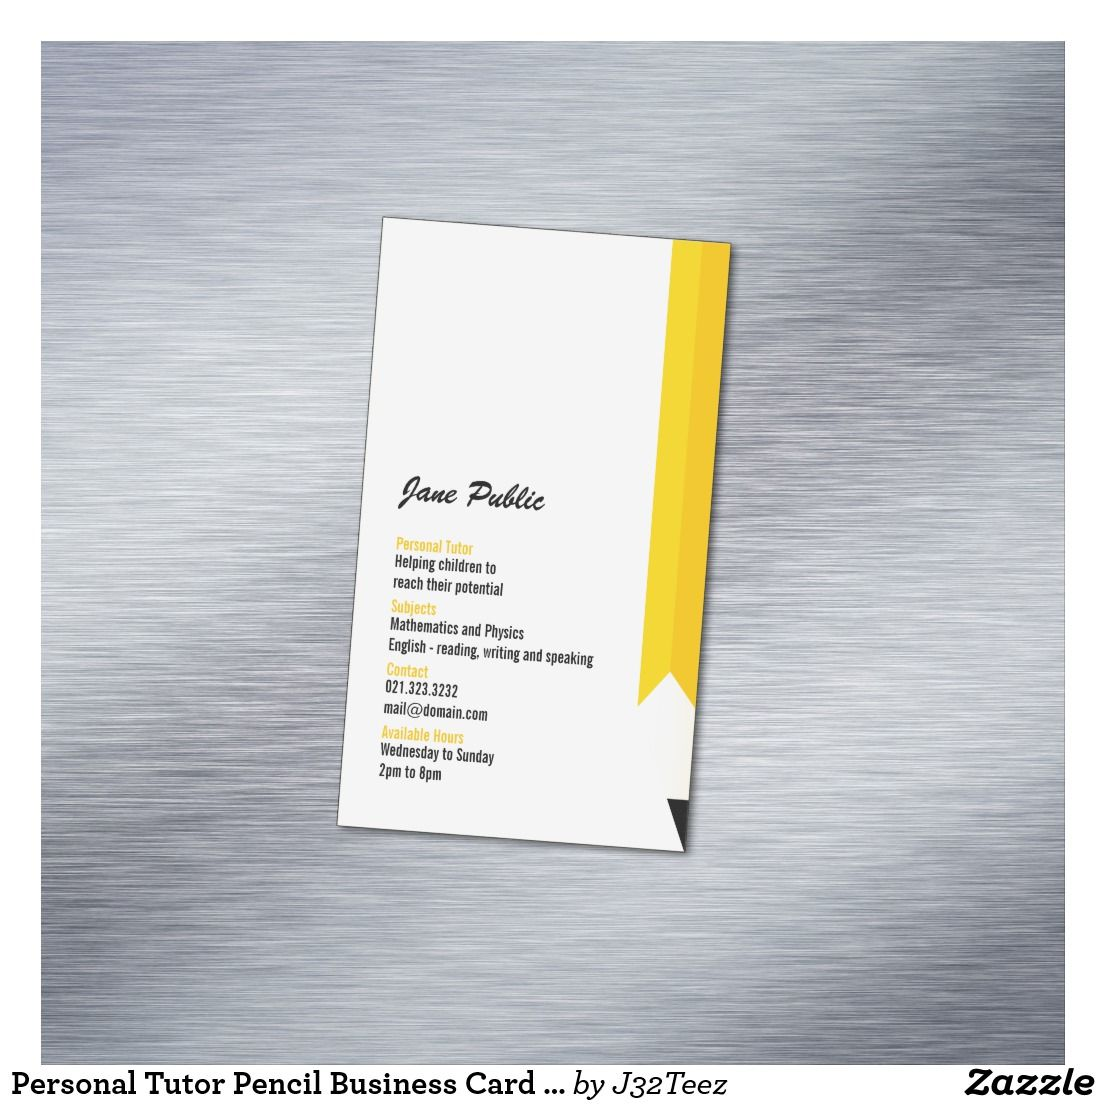 Personal Tutor Pencil Business Card Magnets | Pinterest | Business ...